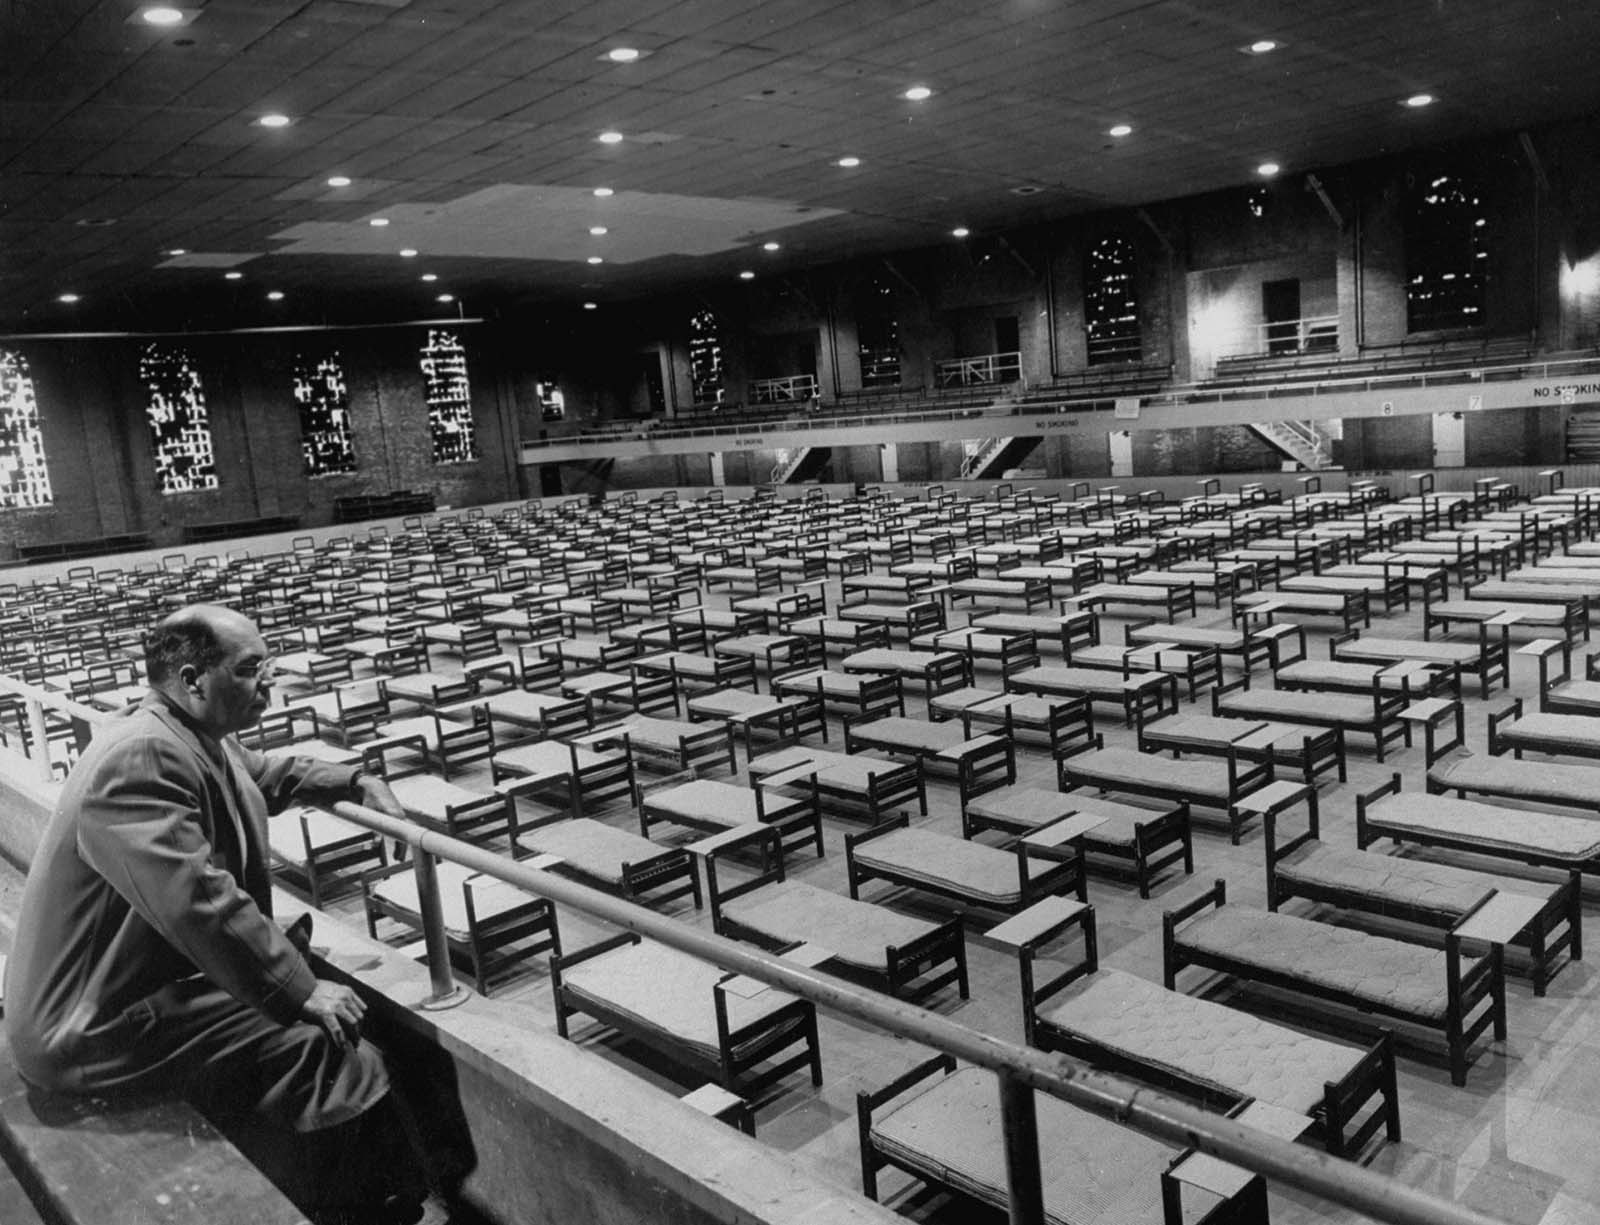 Charles Bowman, acting health officer at the University of Illinois, looked out over the 336 hospital cots set up in an ice rink in anticipation of a rush of flu patients.